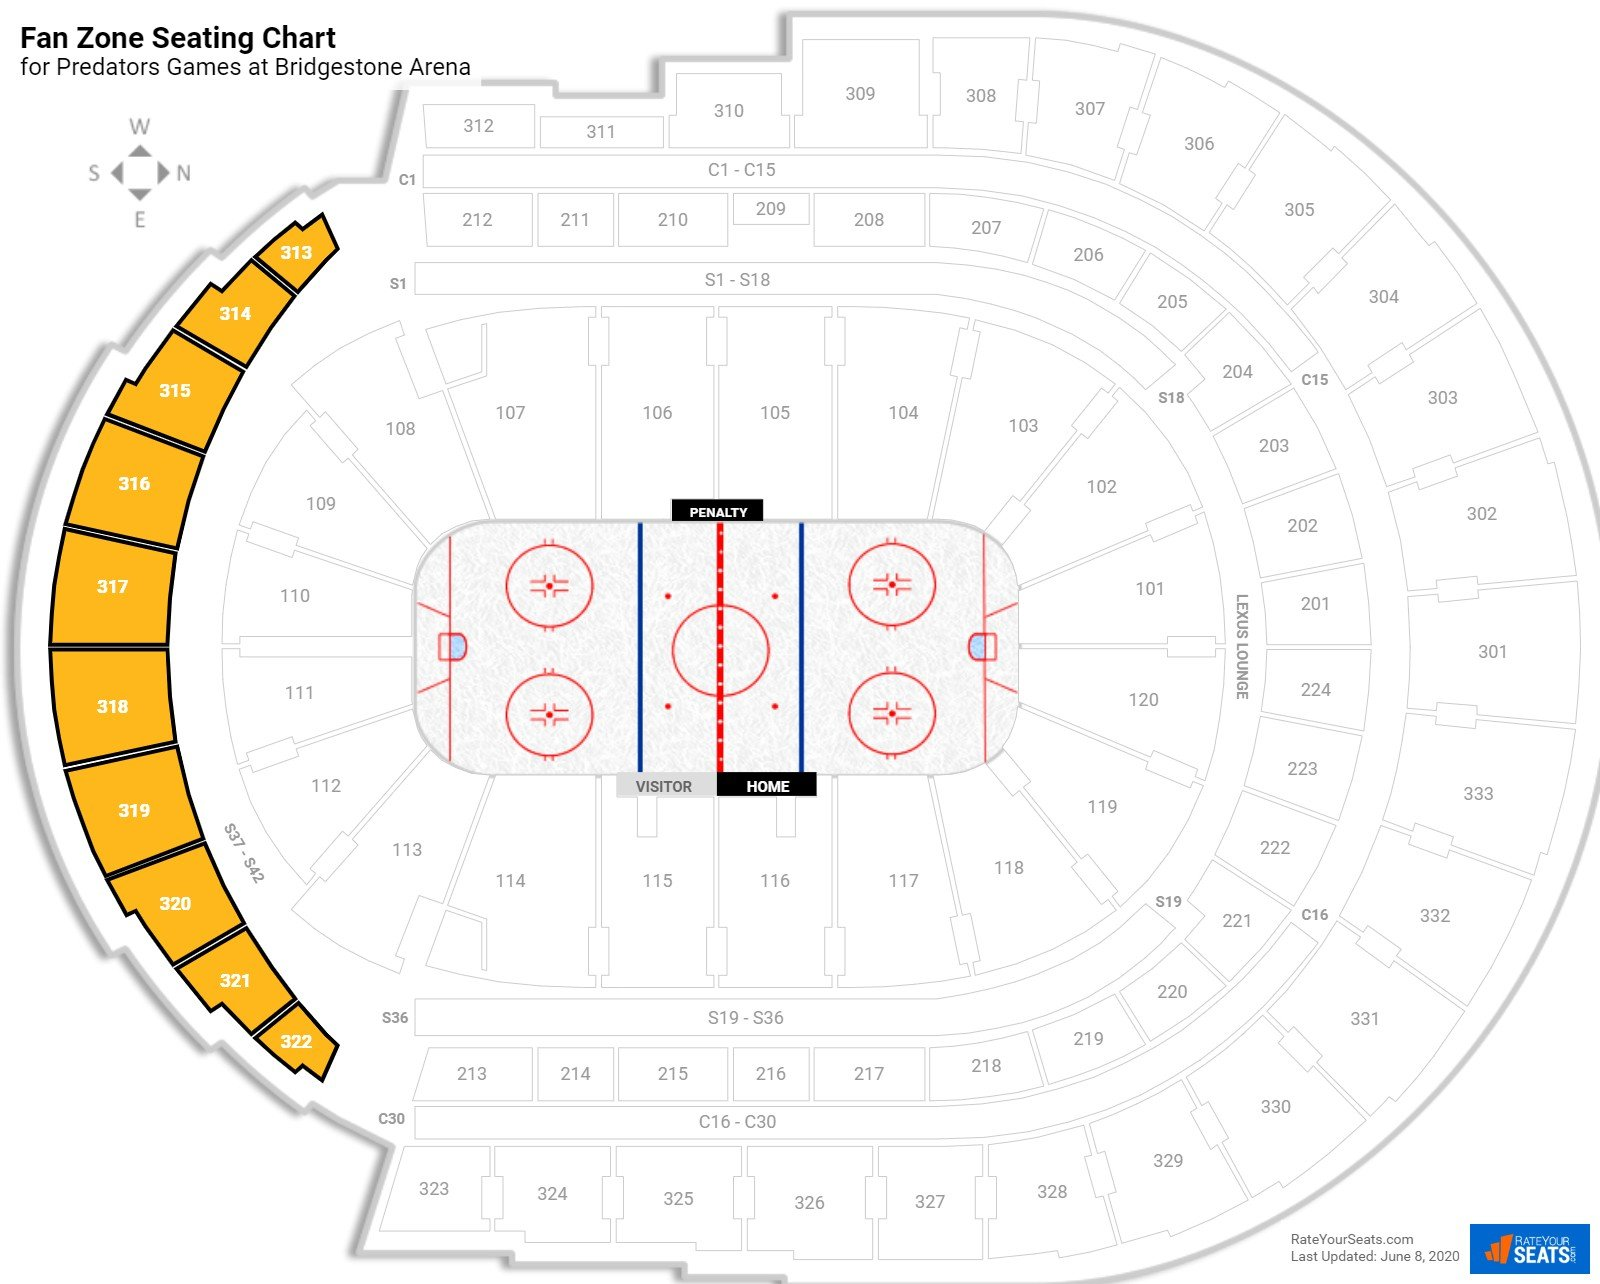 Bridgestone Arena Fan Zone seating chart